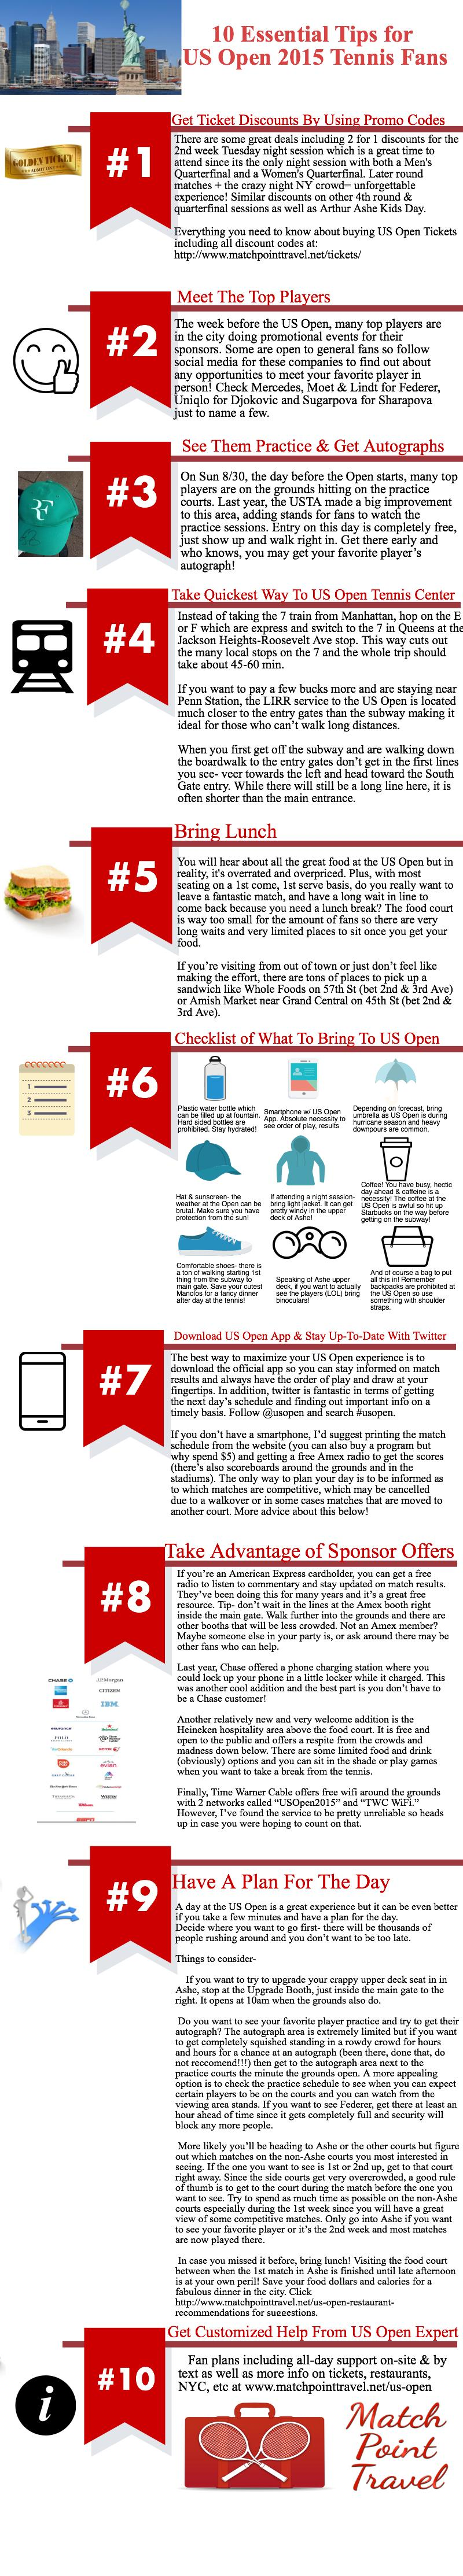 10 Essential Tips for US Open 2015 Tennis Fans(2).jpeg